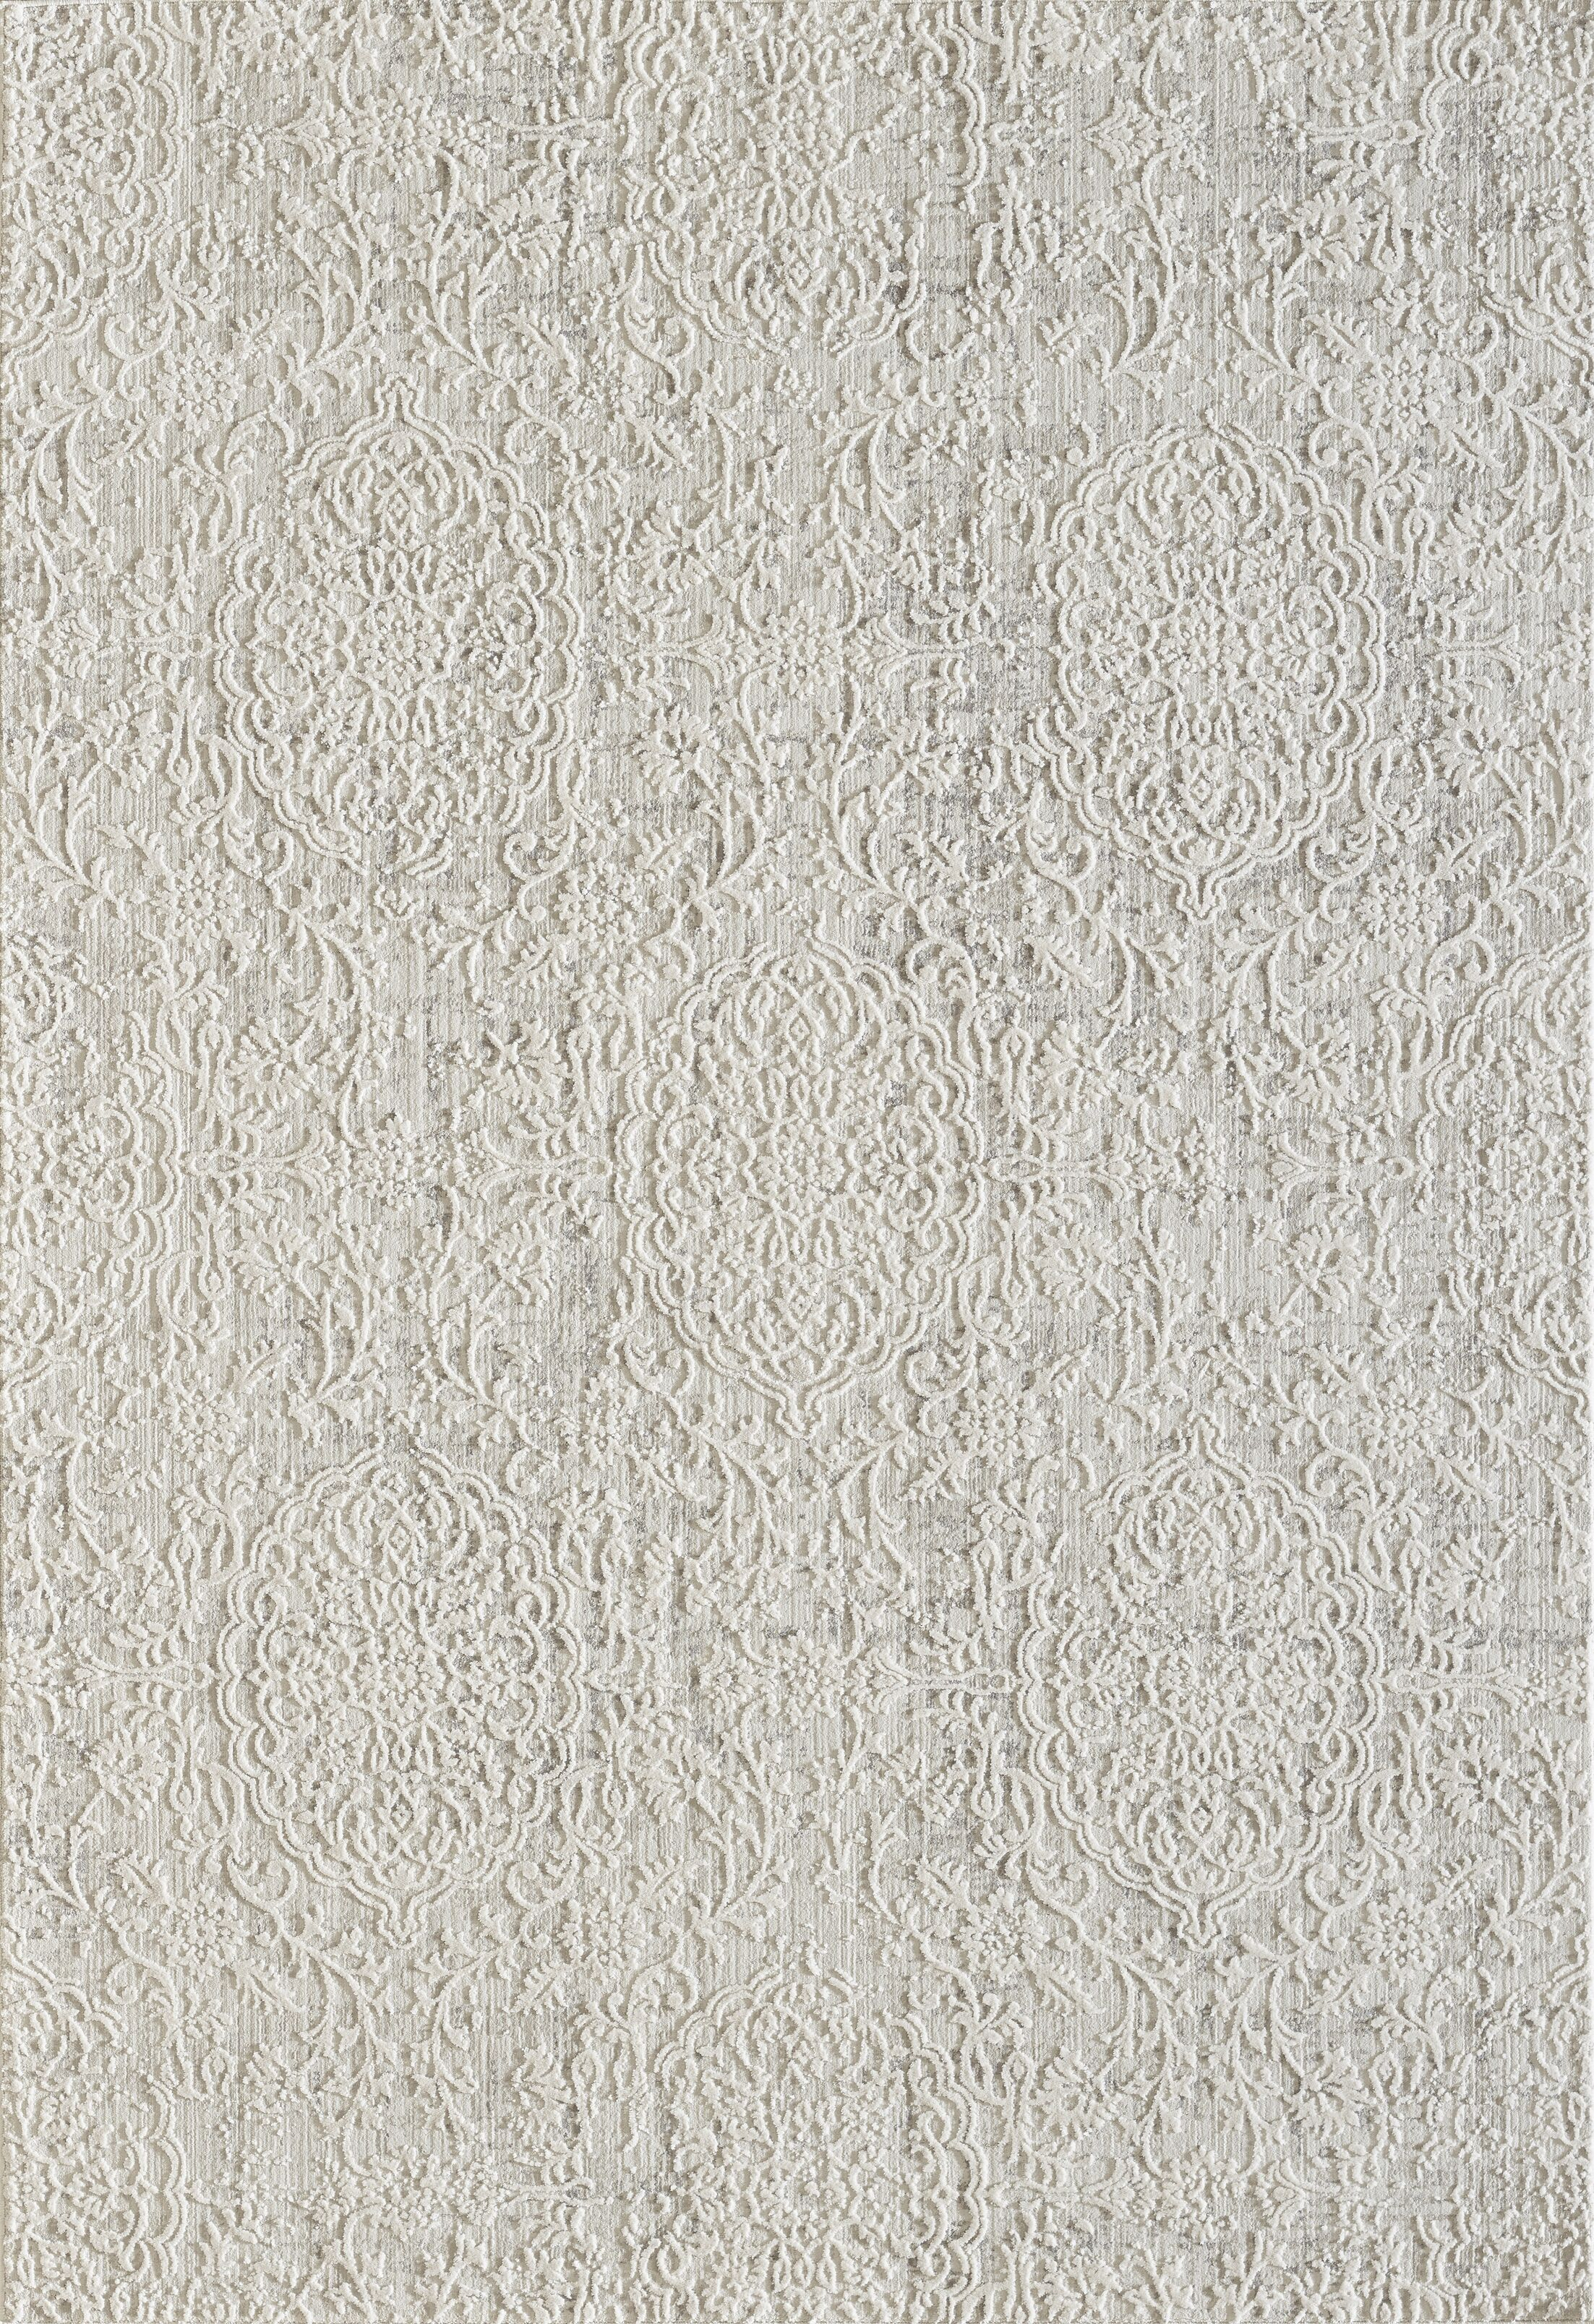 Caddie Ivory/Beige Area Rug Rug Size: Rectangle 9'2